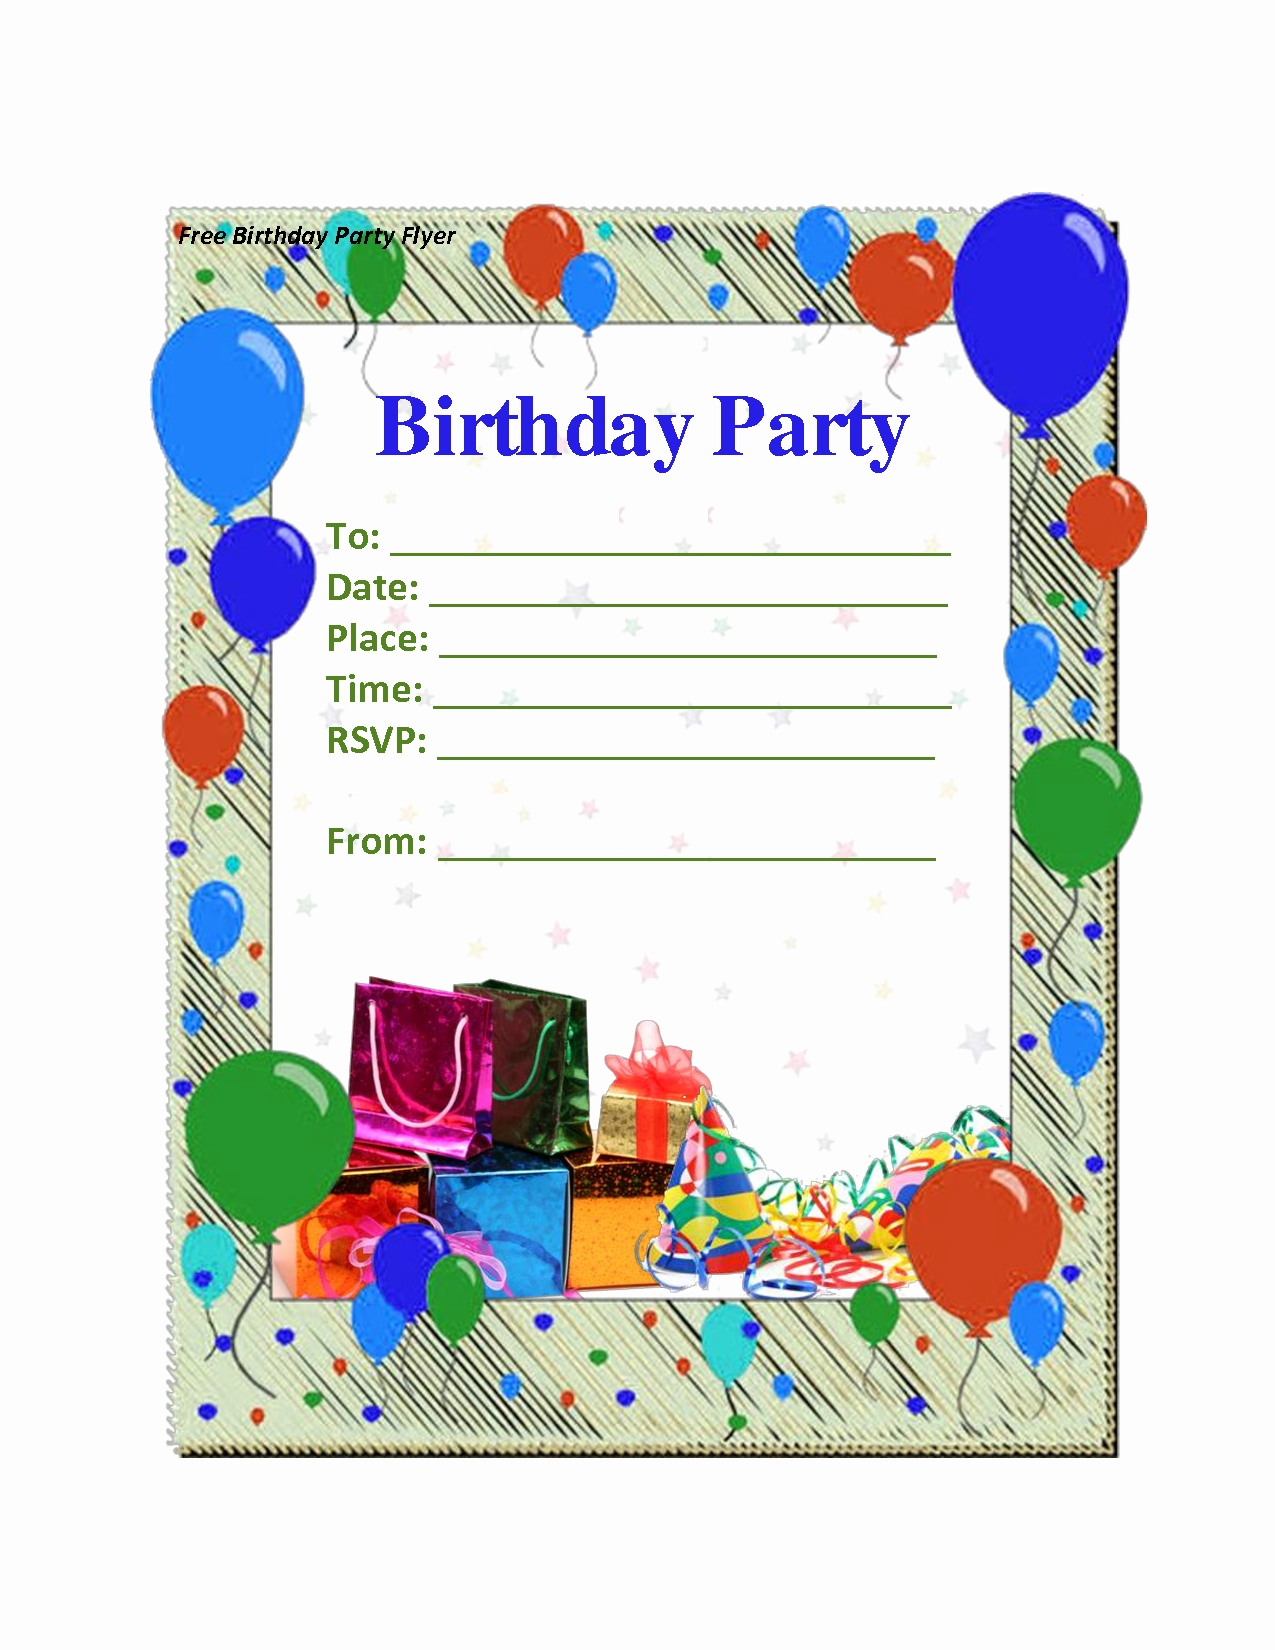 invitation card design for birthday party free ; free-birthday-invitation-card-design-unique-boy-birthday-party-invitation-templates-free-stephenanuno-of-free-birthday-invitation-card-design